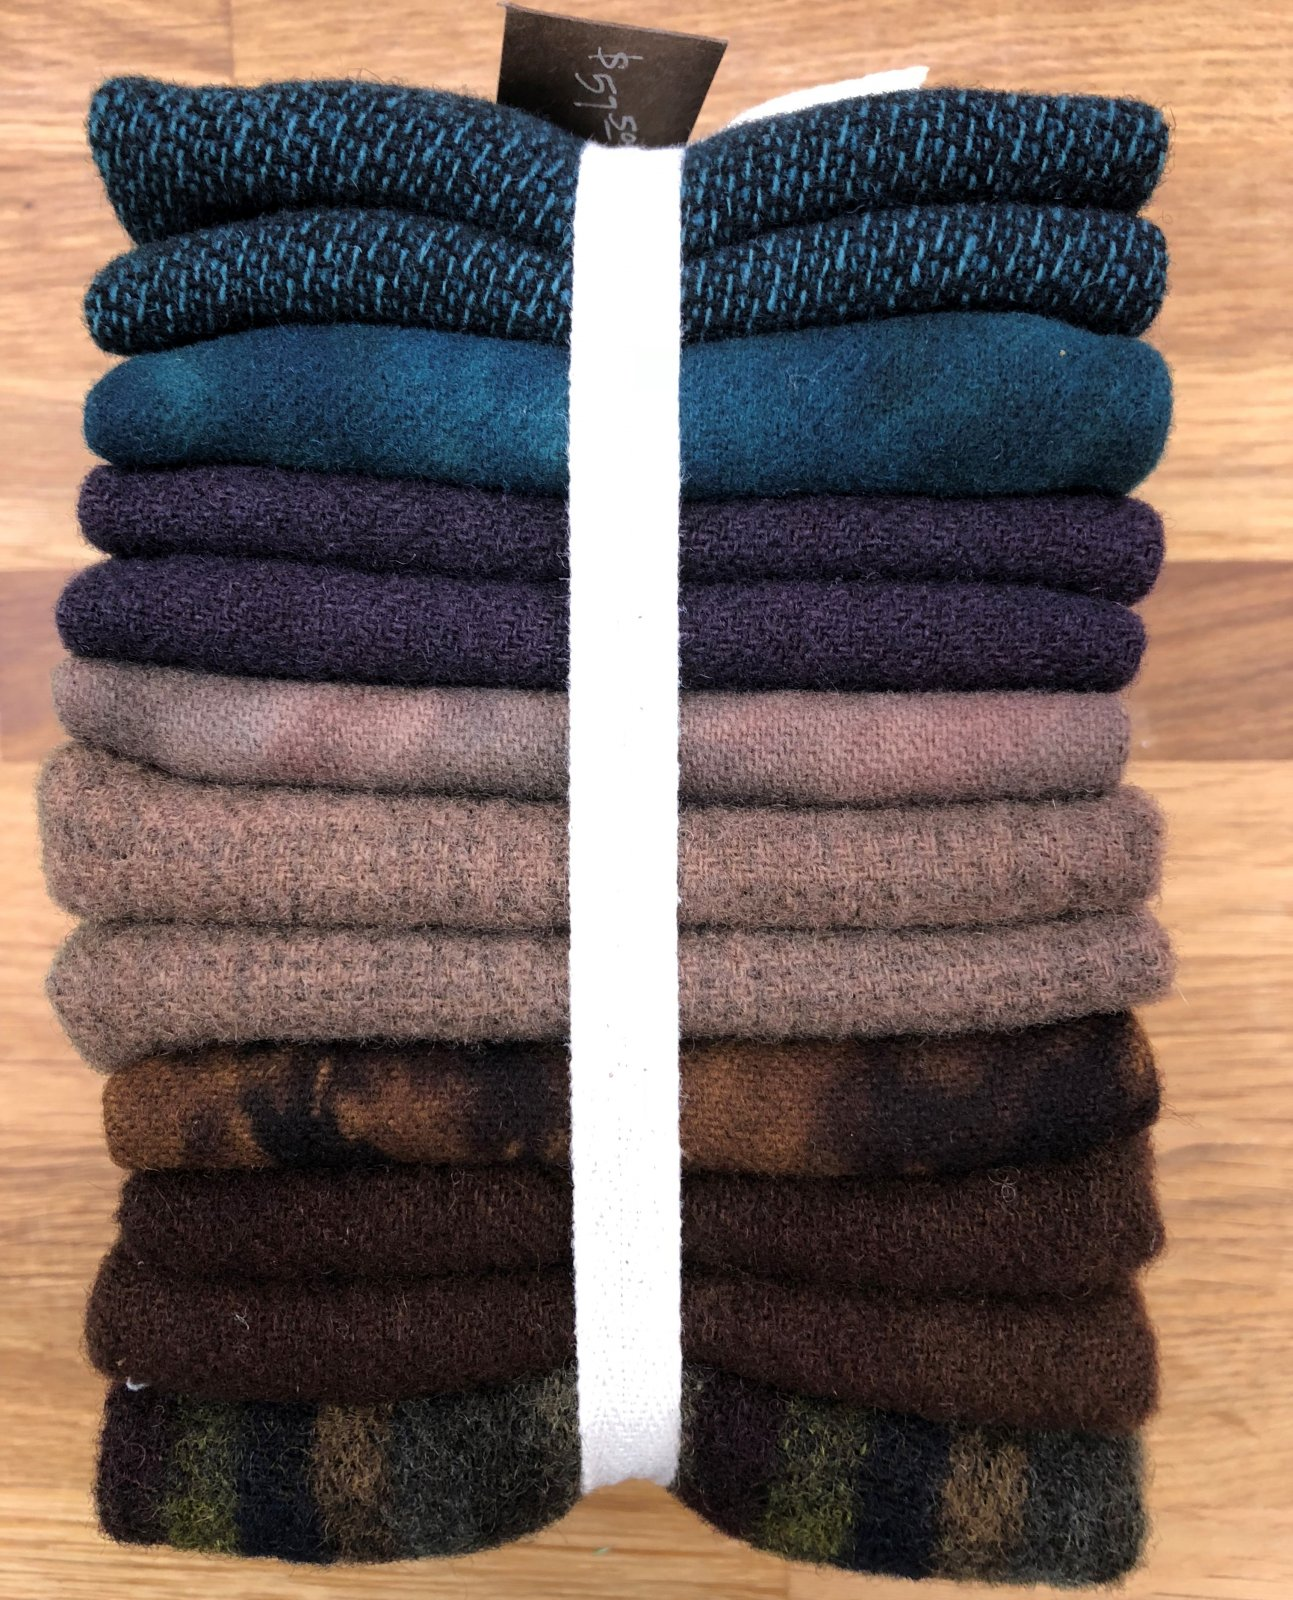 Wool of the Month Club - September 2018